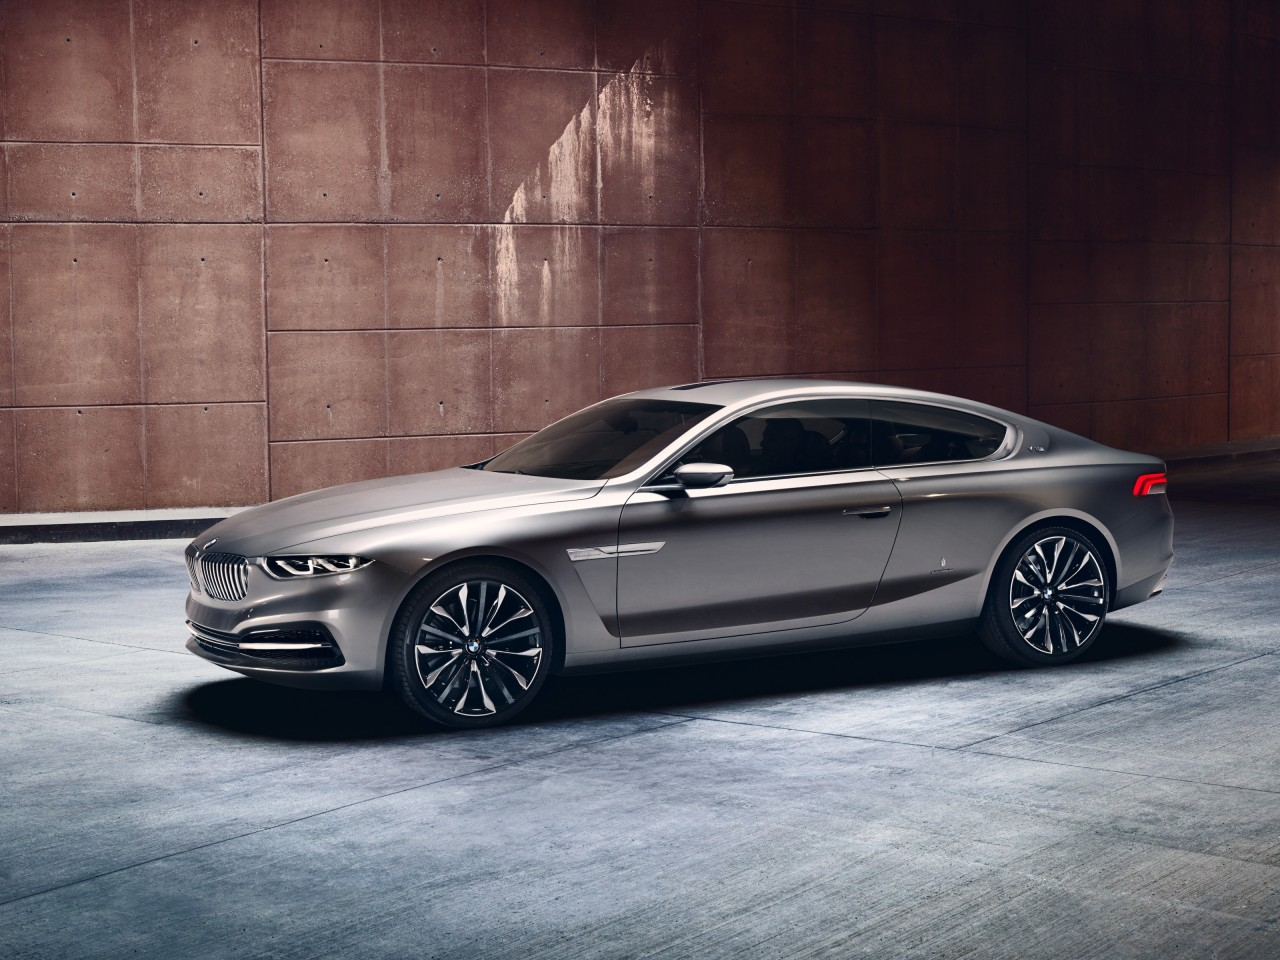 BMW GRAN LUSSO V12 COUPE